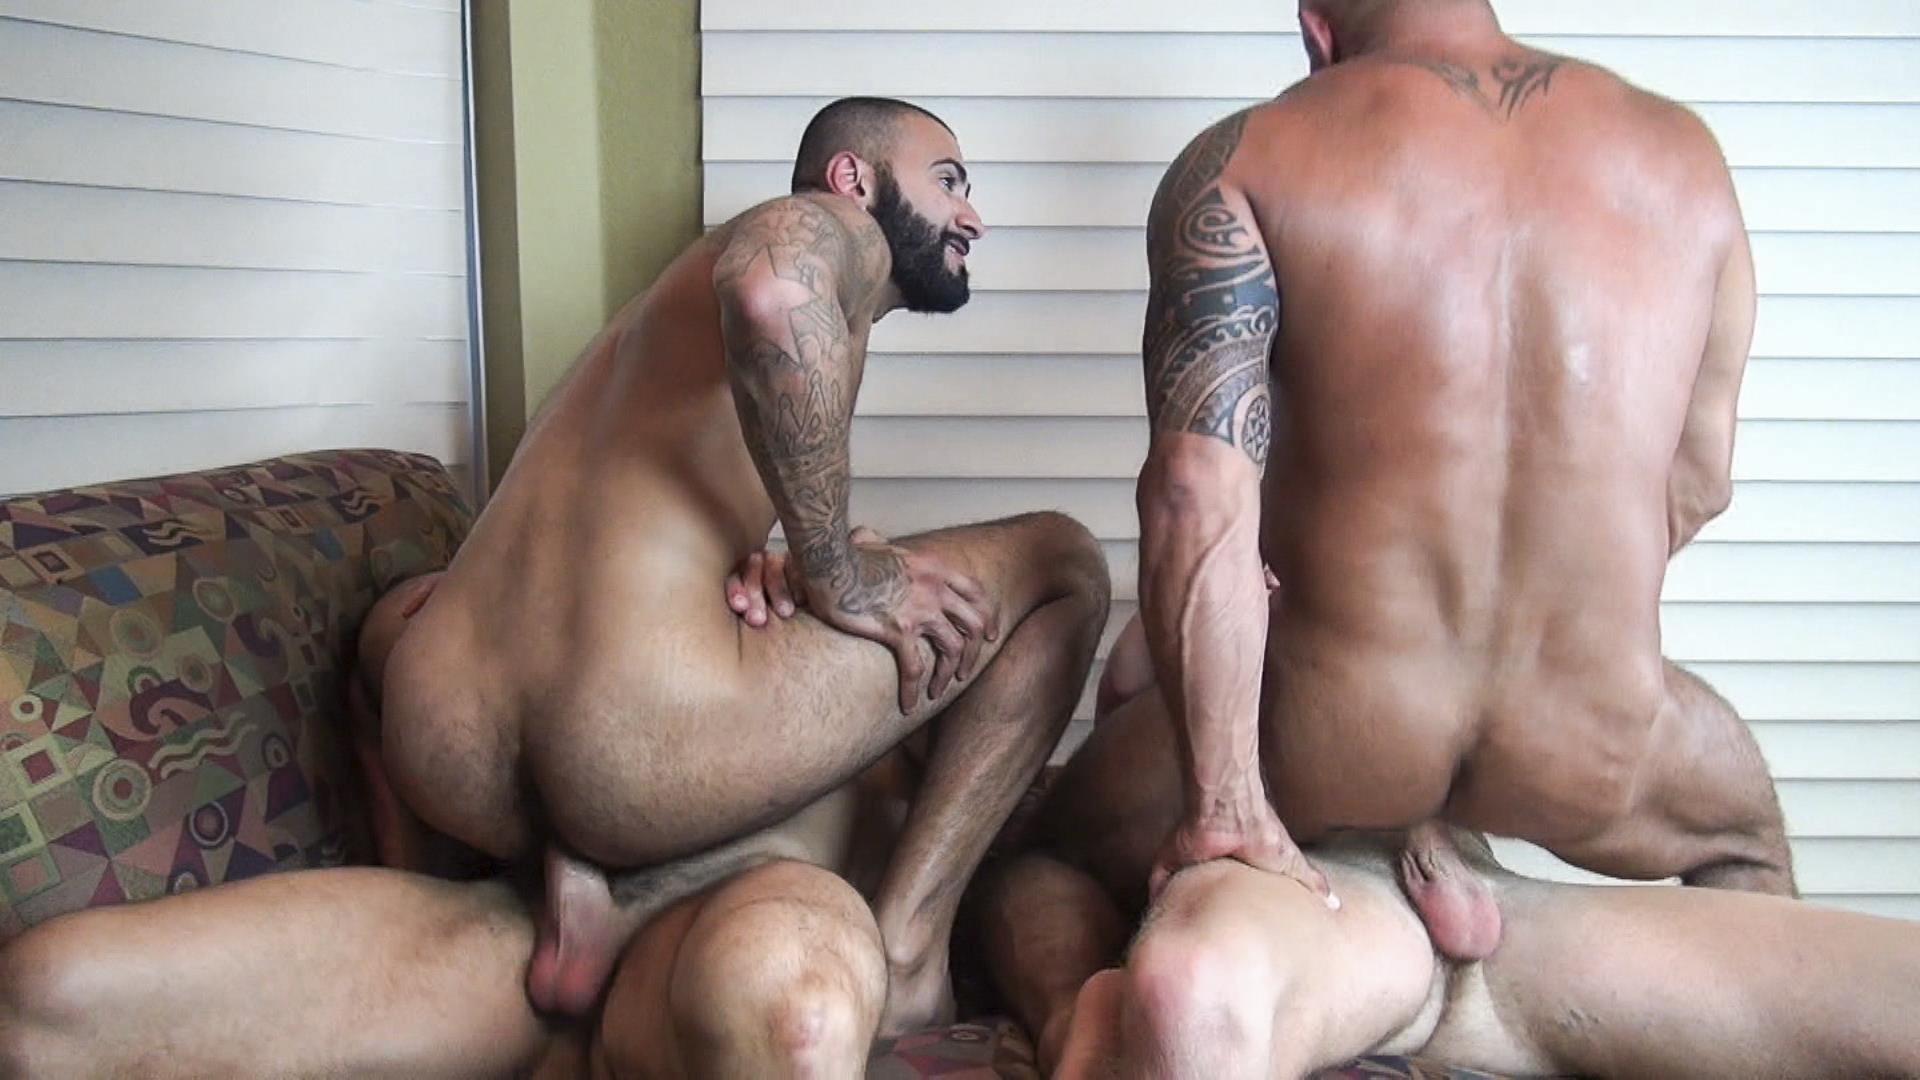 Raw Fuck Club Vic Rocco and Rikk York and Billy Warren and Job Galt Bareback Daddy Amateur Gay Porn 13 Four Hairy Muscle Daddies In A Bareback Fuck Fest Orgy